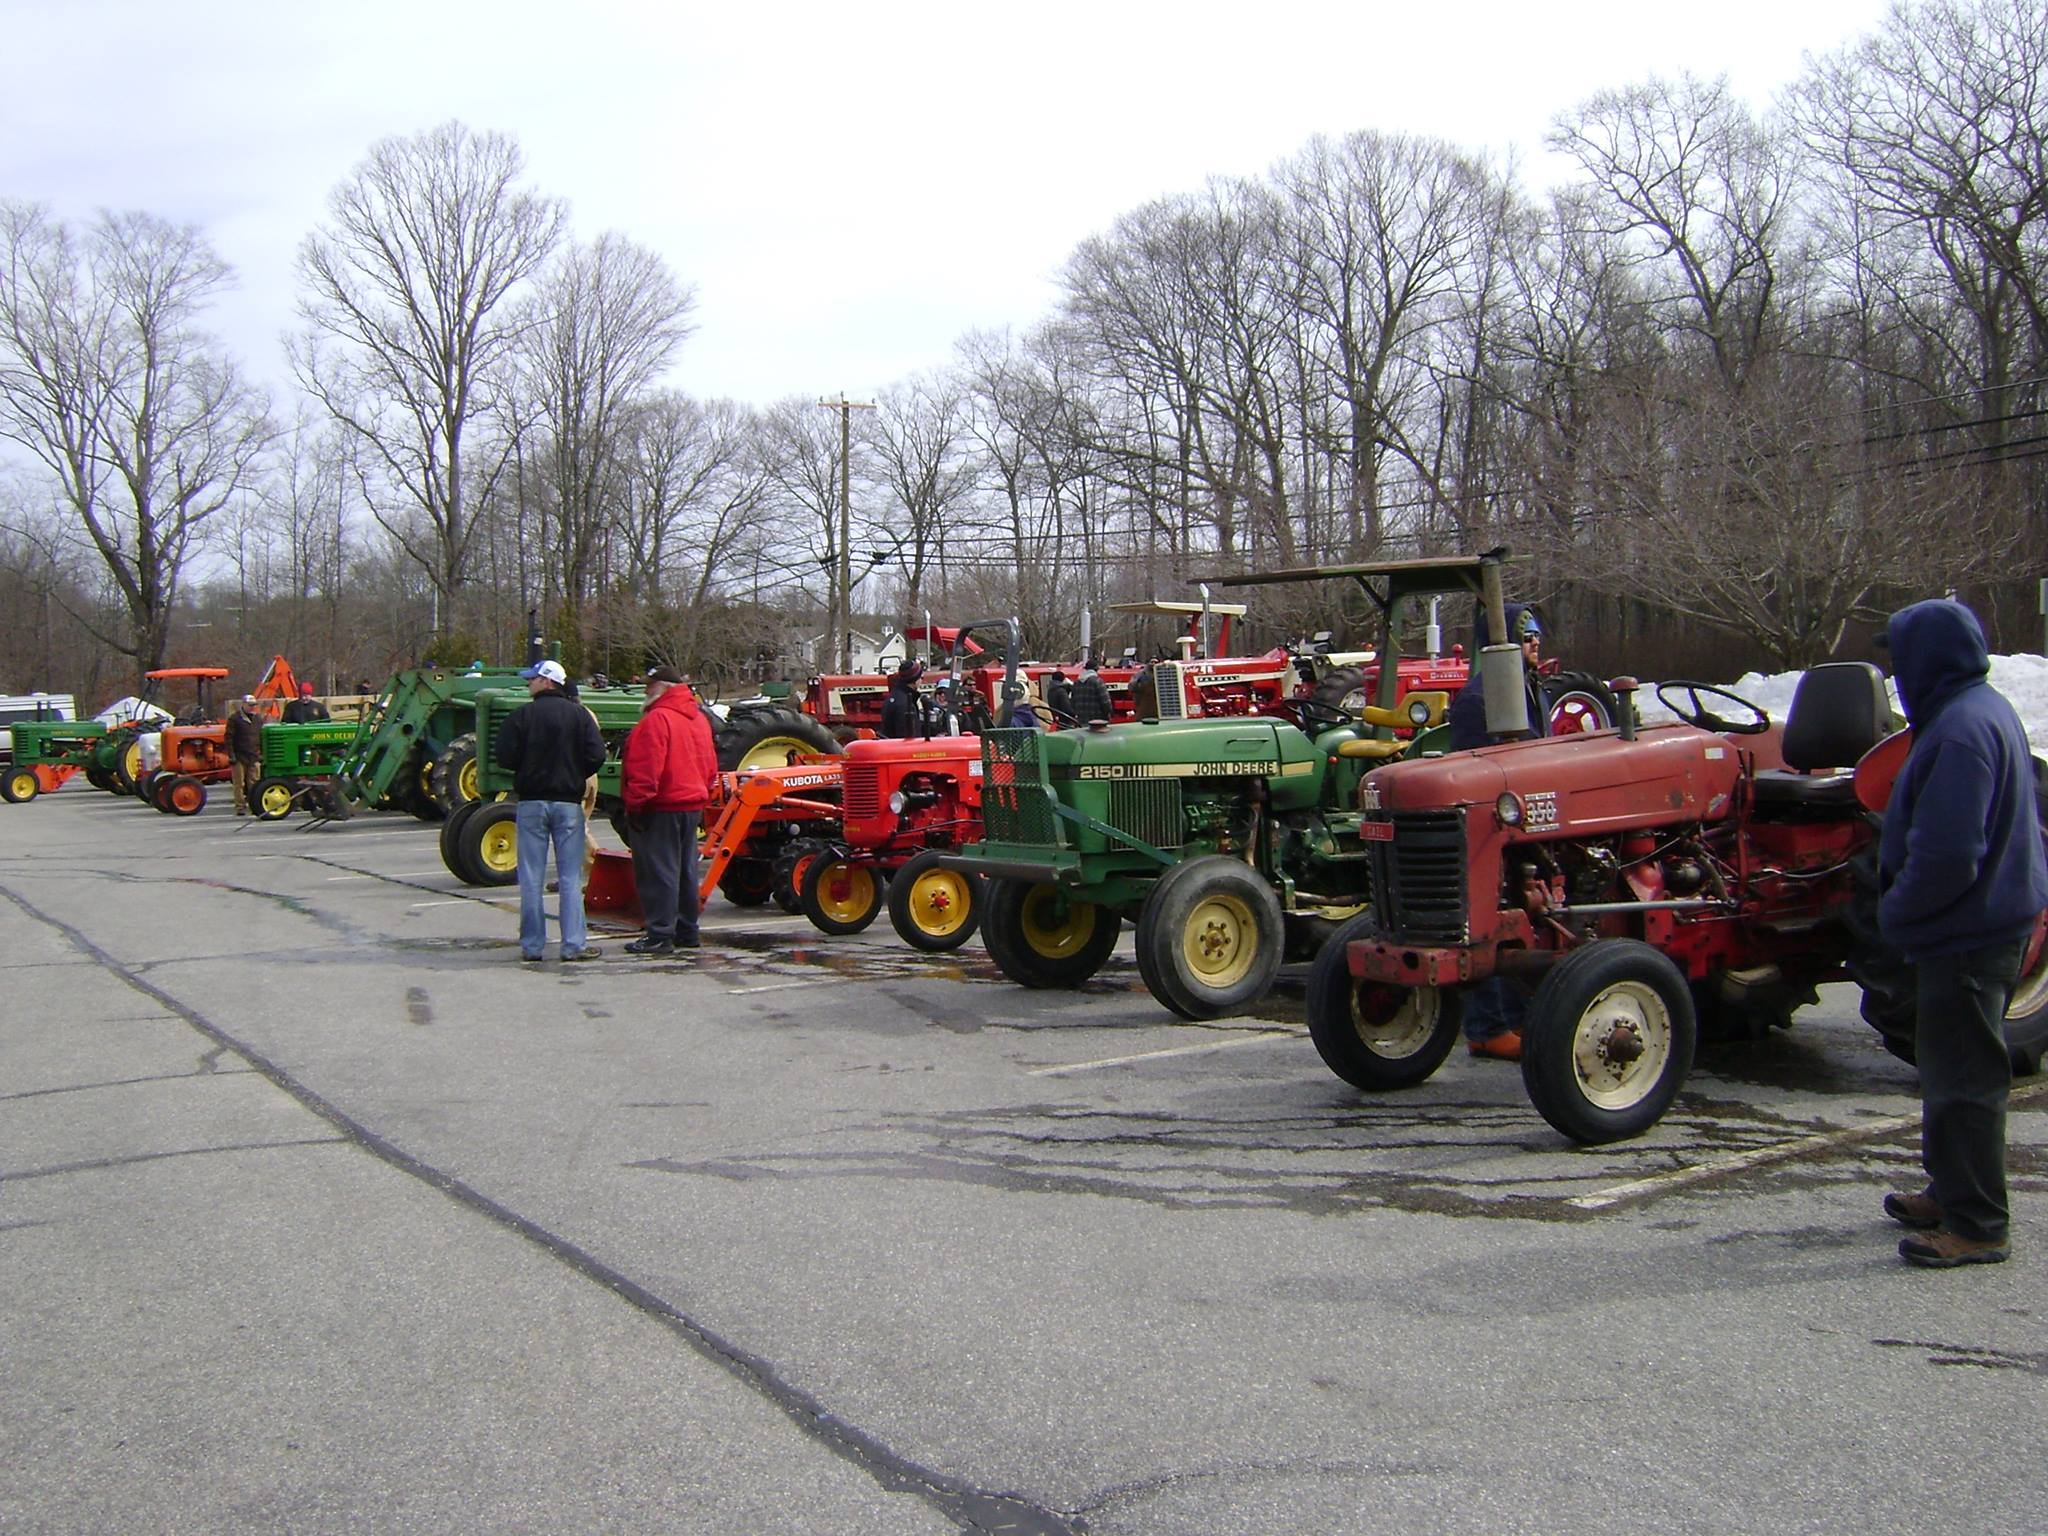 Check out the antique tractor parade.